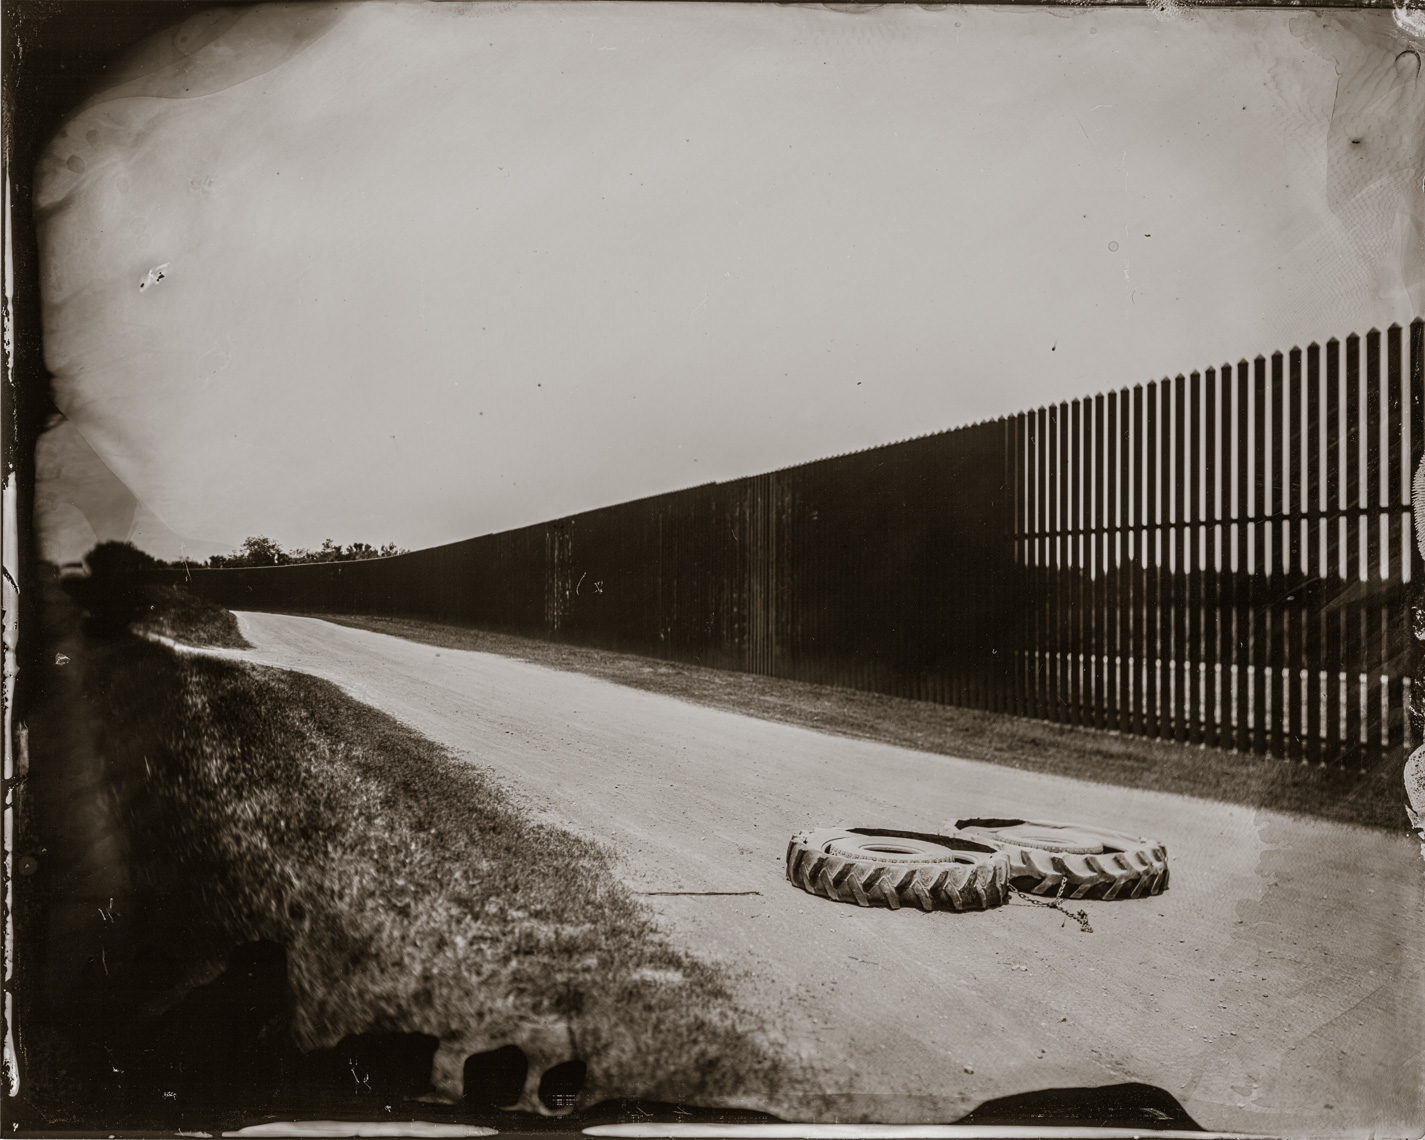 Patrick-Cavan-Brown-Tintype-Wetplate-01-Border-Wall